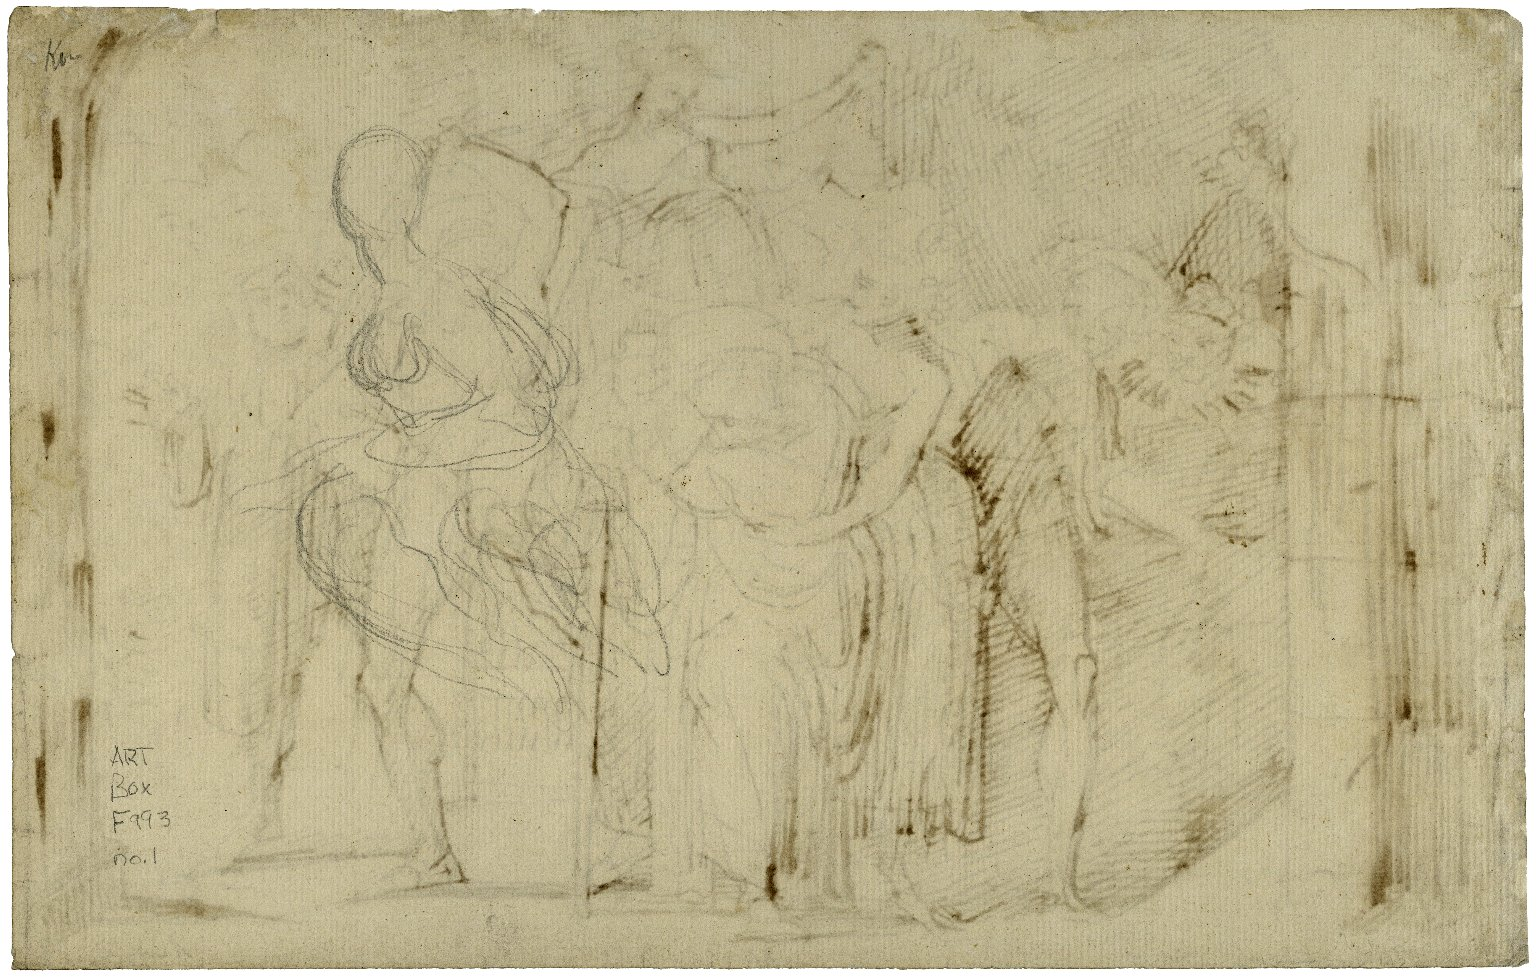 [Merry wives of Windsor, act IV, sc. 2, Ford belaboring Falstaff] [graphic] / [Henry Fuseli].